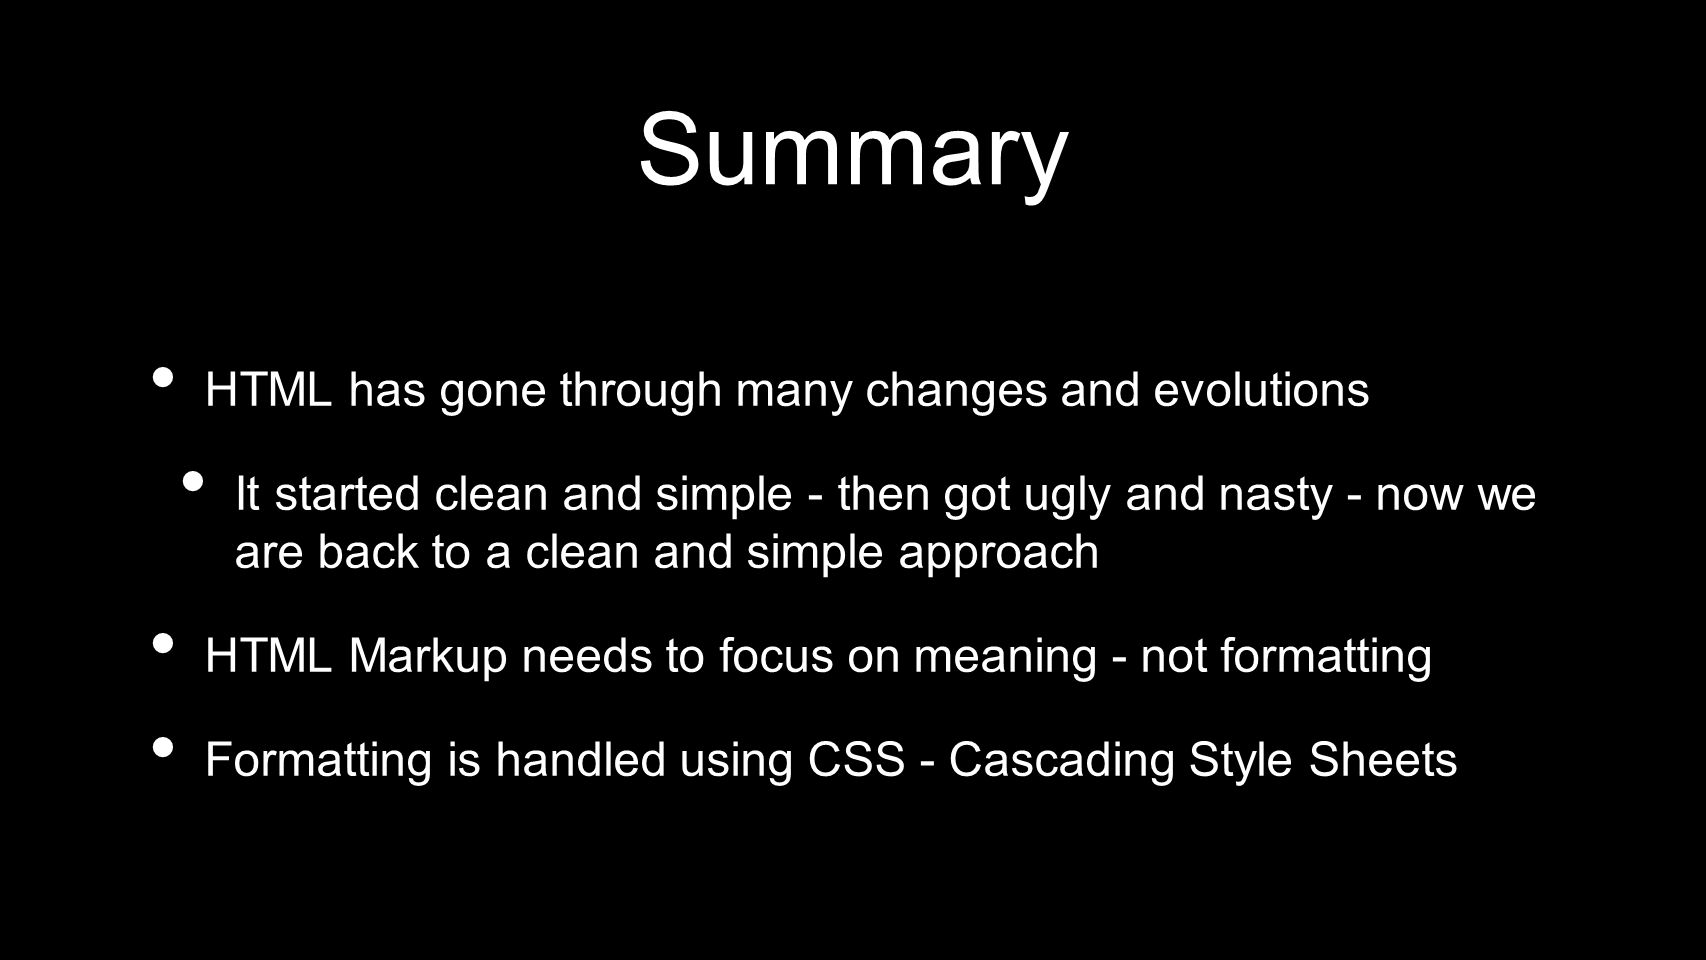 Summary HTML has gone through many changes and evolutions It started clean and simple - then got ugly and nasty - now we are back to a clean and simple approach HTML Markup needs to focus on meaning - not formatting Formatting is handled using CSS - Cascading Style Sheets